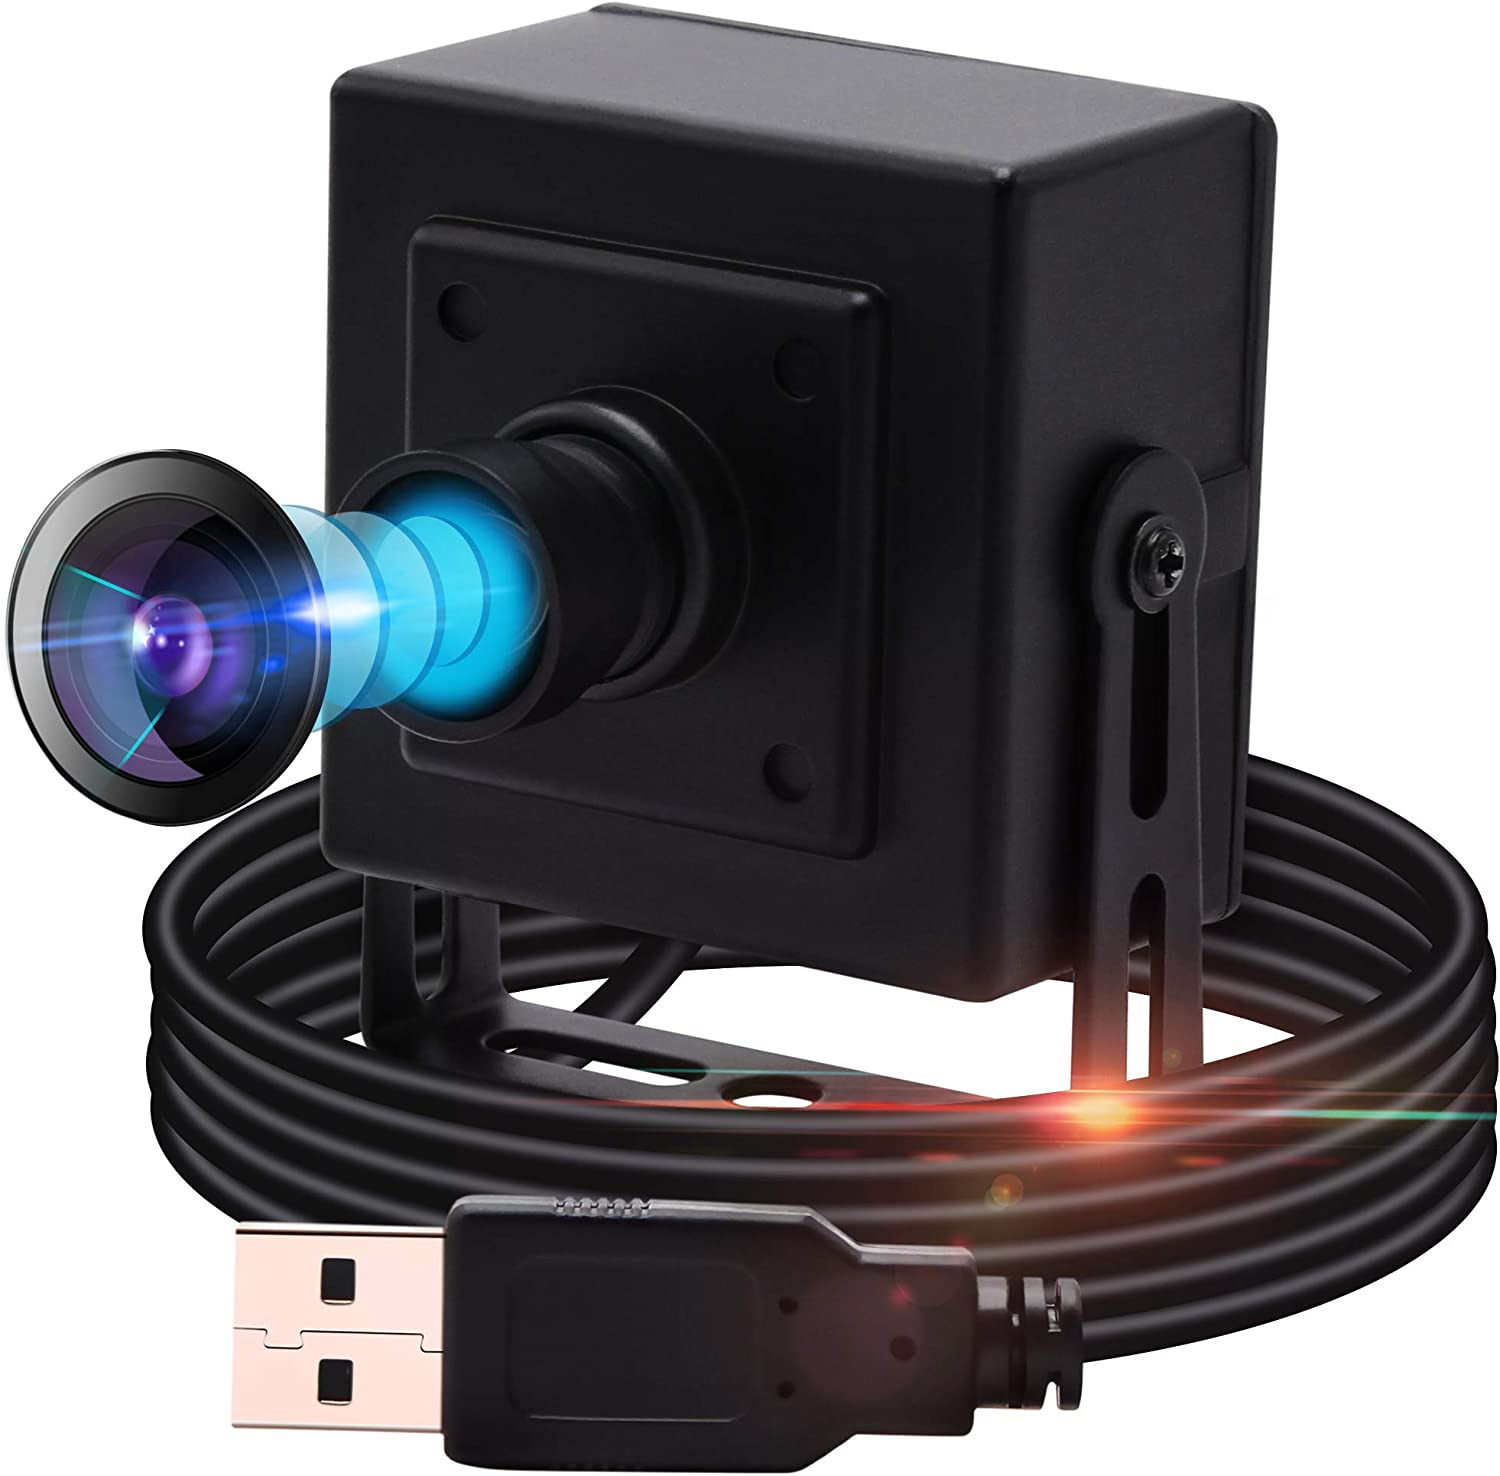 Usb Camera 13MP USB Webcam Mini Camera,Wide Angle Usb with Cameras High Definition Full HD USB Camera,100 Degree No-Distortion Camera USB with Sony IMX214,UVC Support,Plug&Play for Windows,Android,Mac